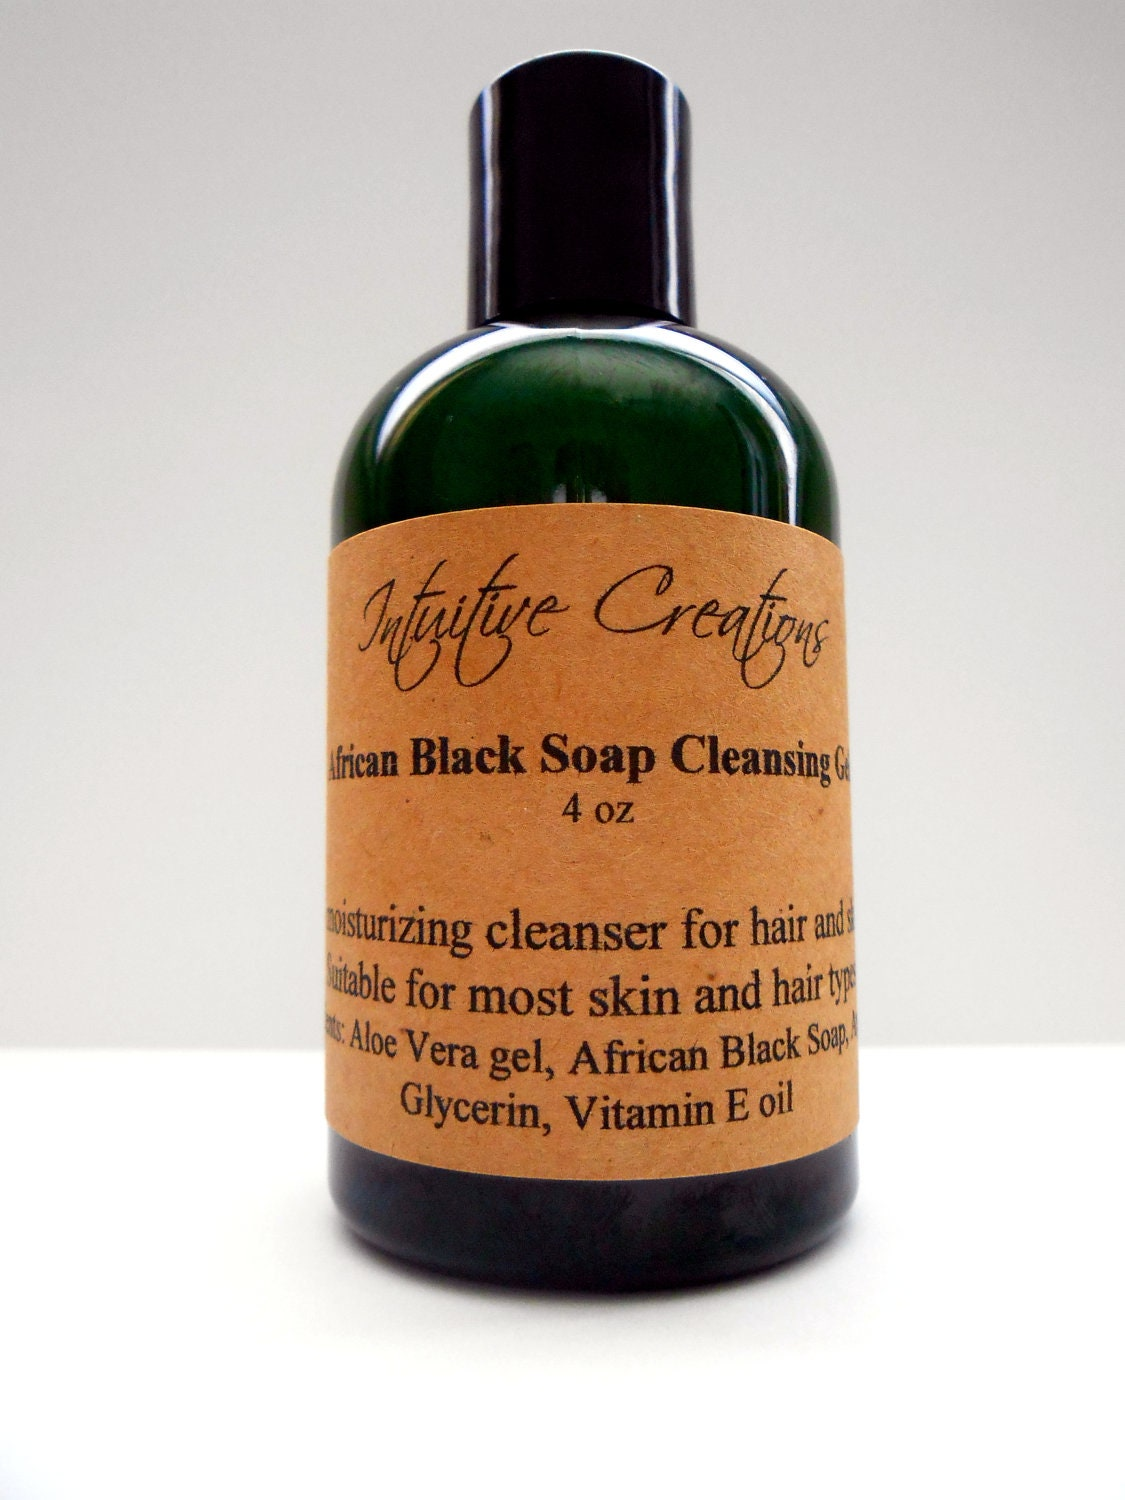 African Black Soap Cleansing Gel